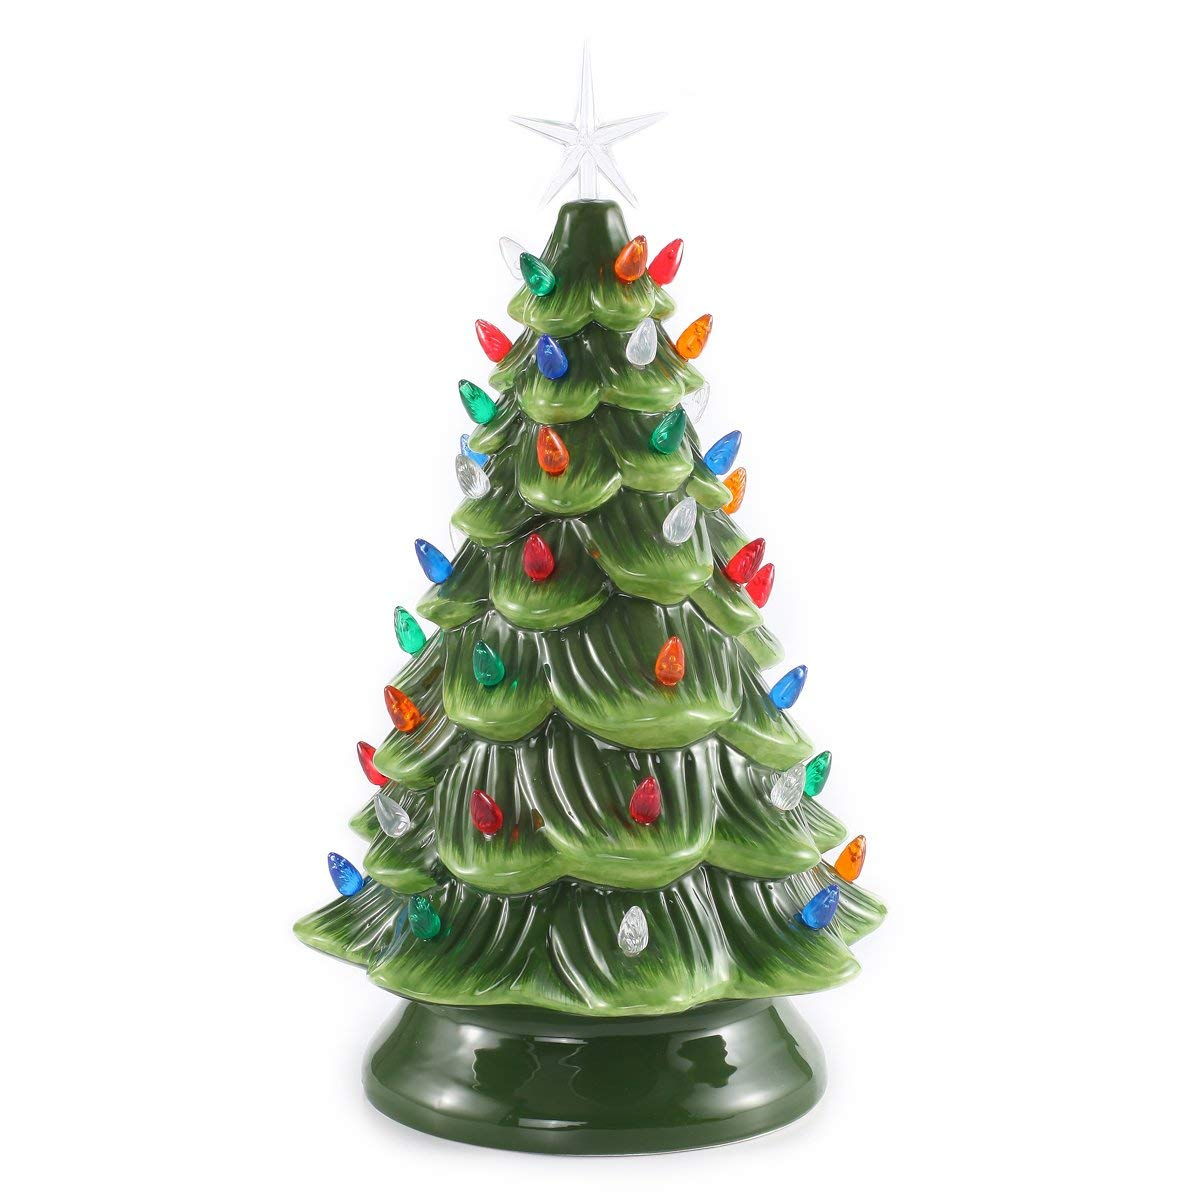 Prelit Ceramic Christmas Tree with Multicolor Bulbs - Nostalgic Christmas Decor - These are my FAVORITE Vintage-Inspired Christmas Decorations!